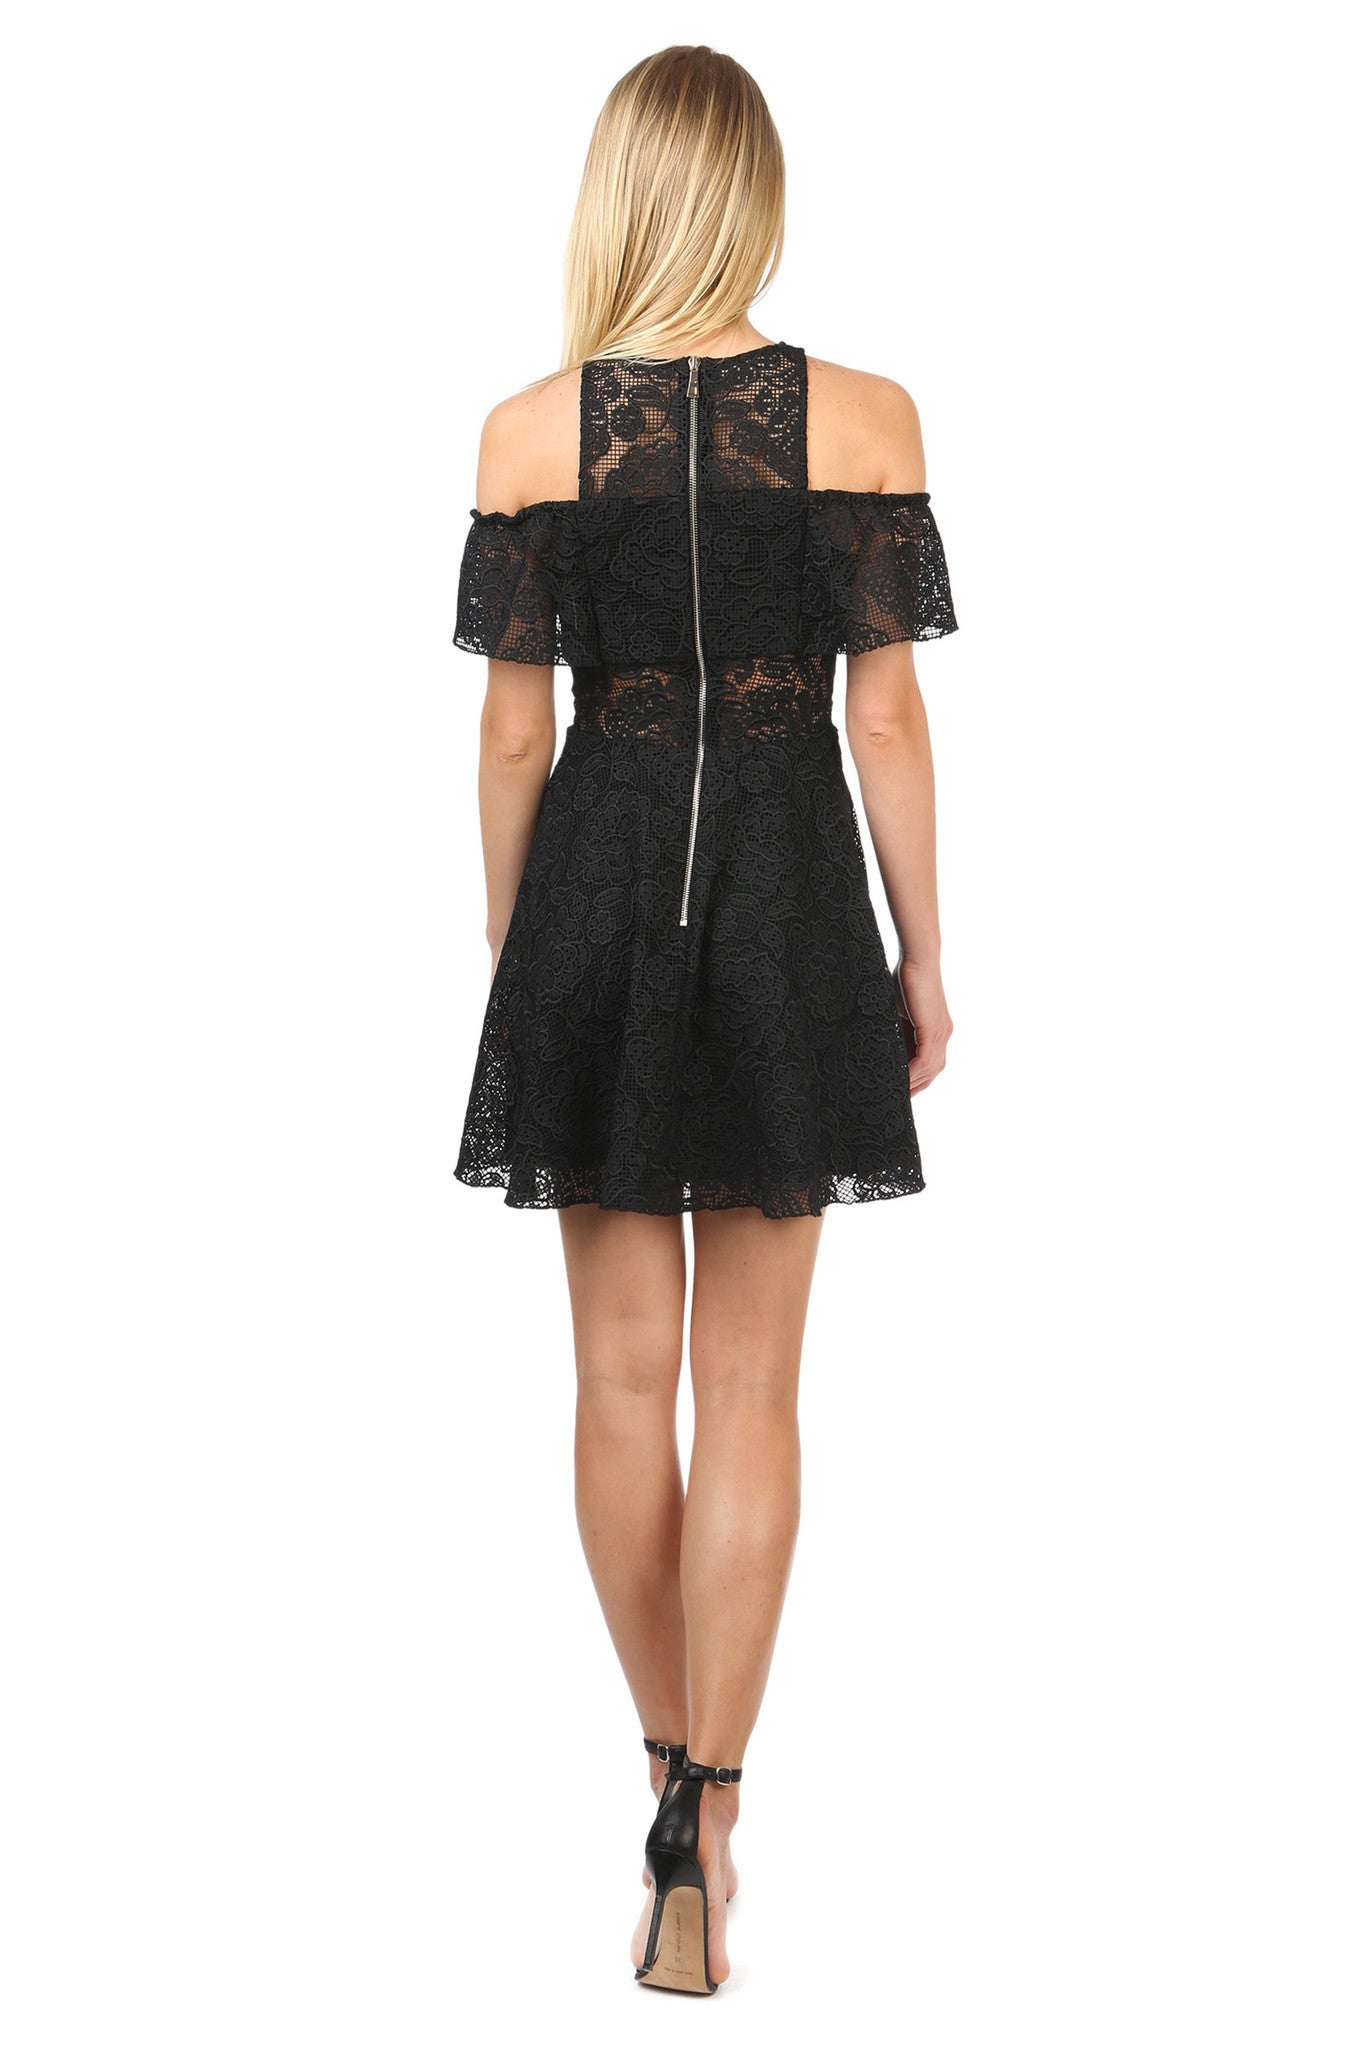 Jay Godfrey Black Lace Cold Shoulder Dress - Back View